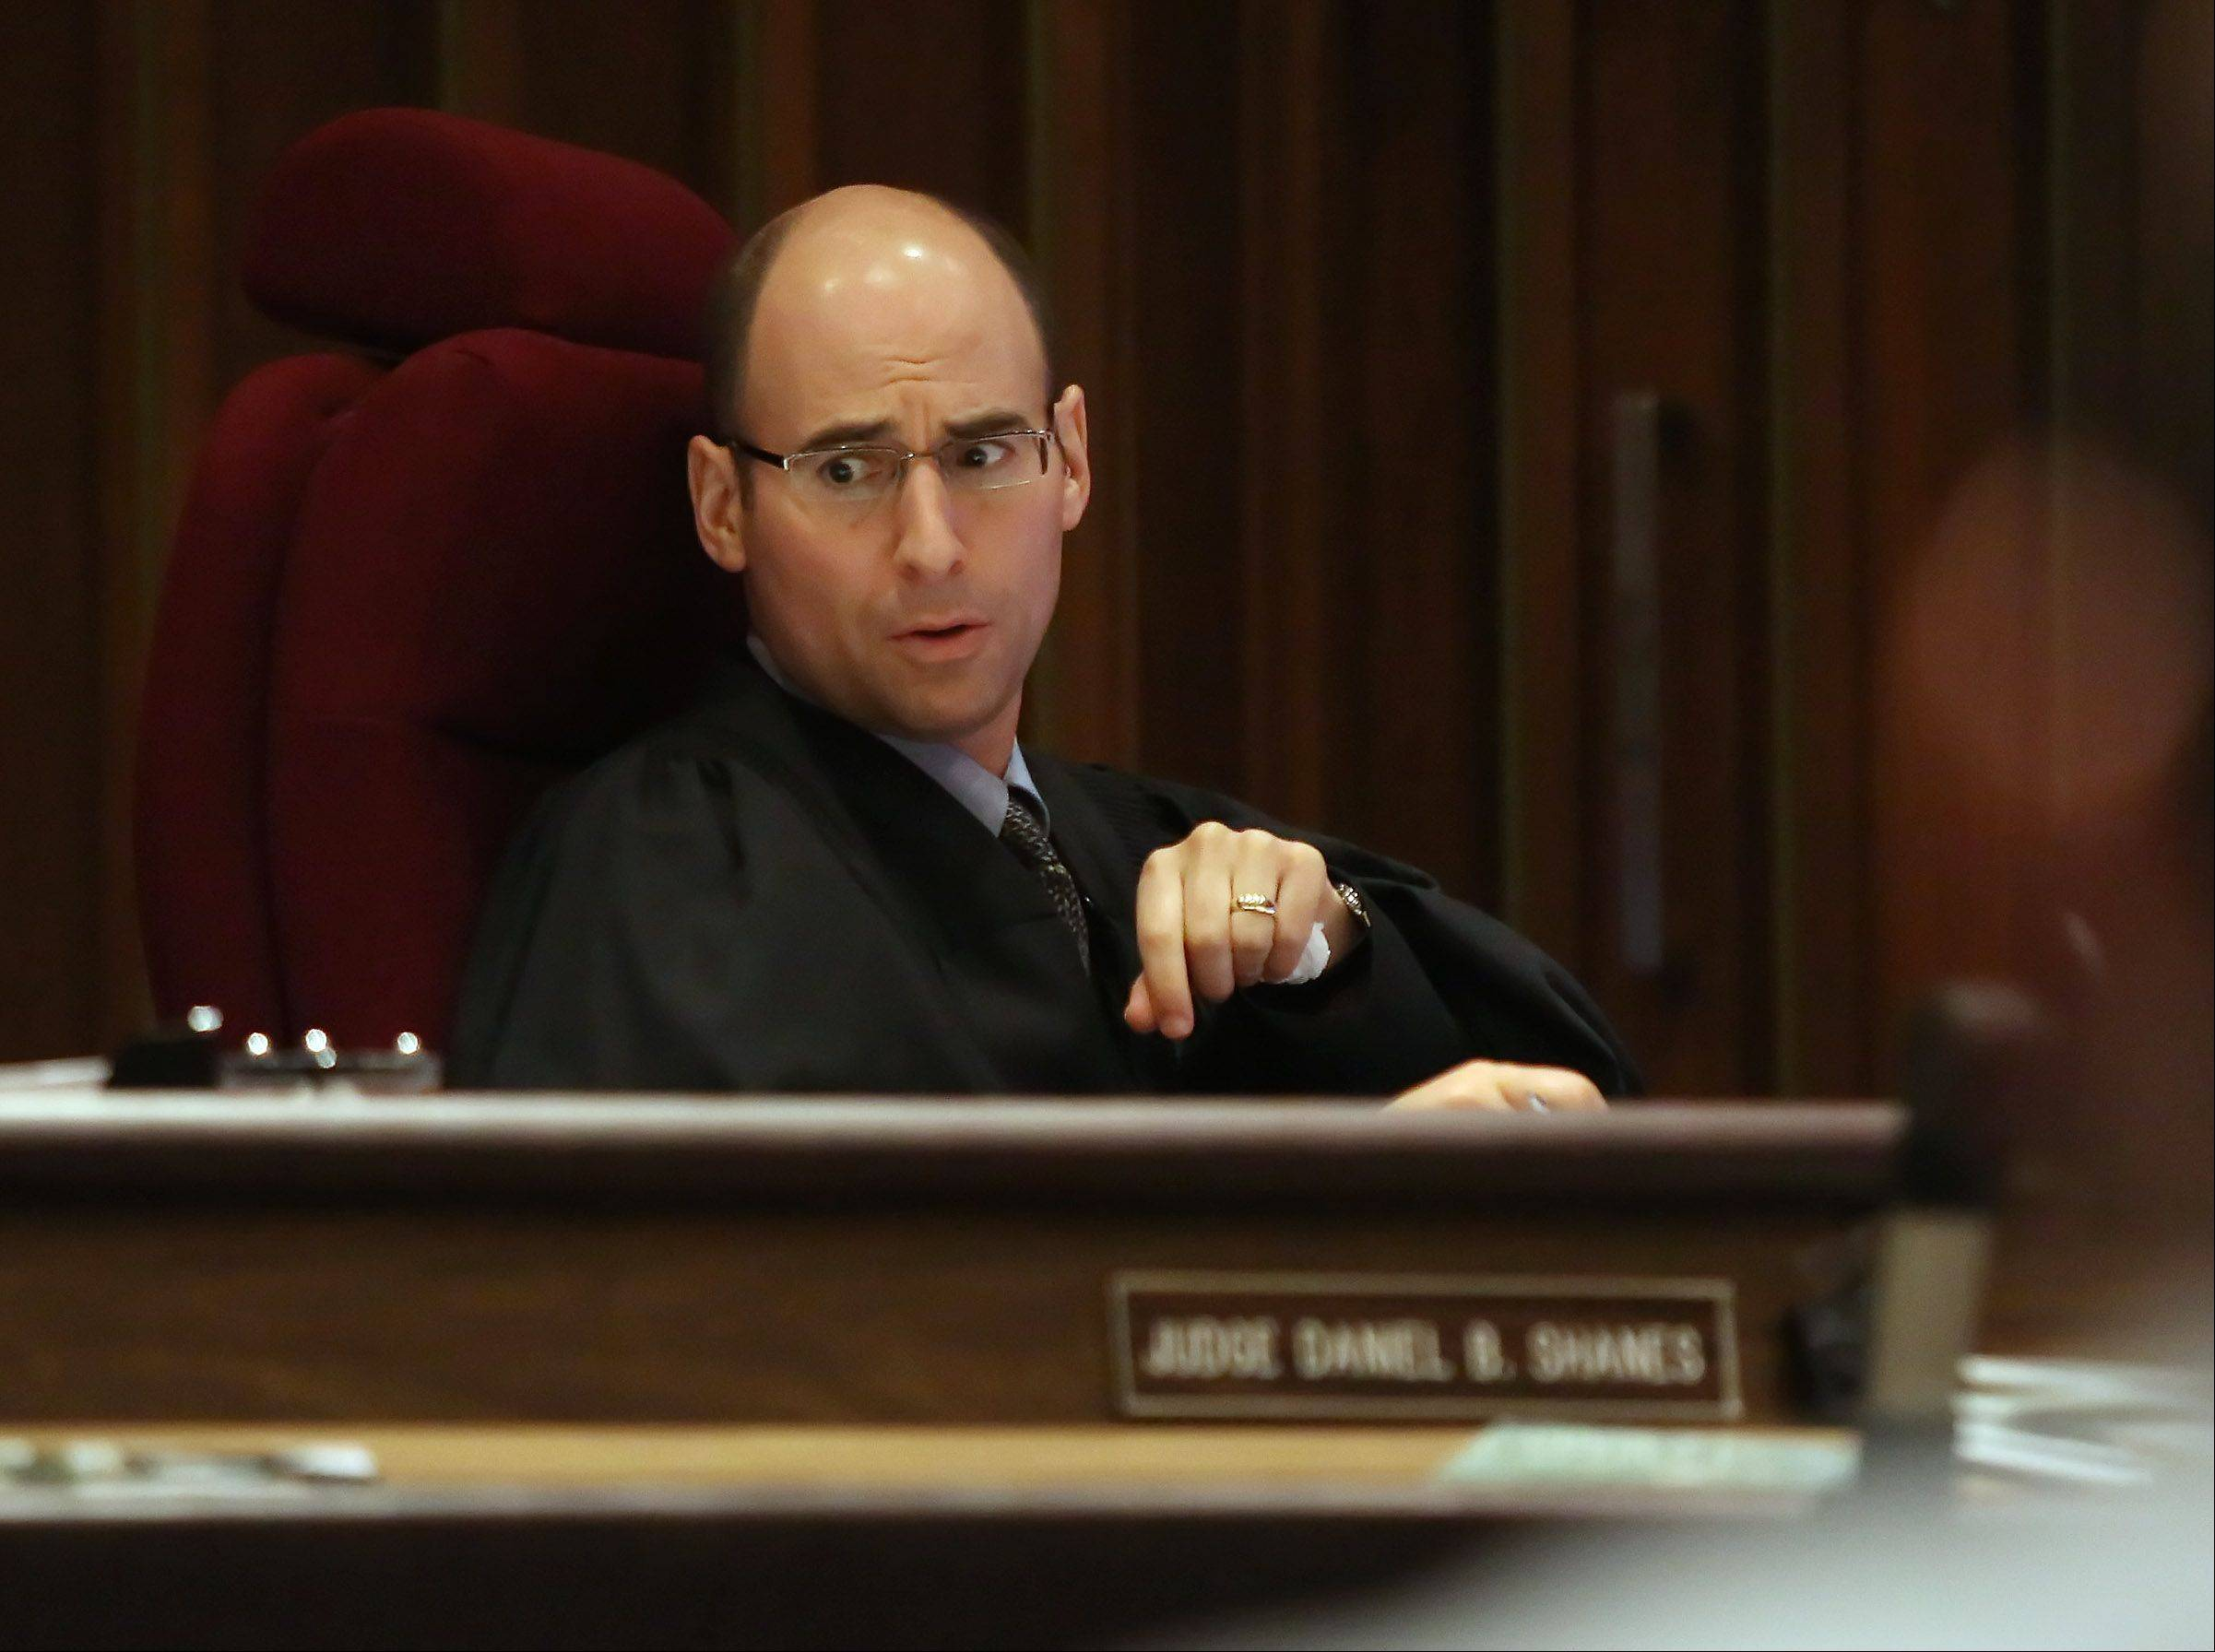 Lake County Judge Daniel B. Shanes listens to an objection during the murder trial of Montago Suggs of Kenosha, Wis., Tuesday at the Lake County courthouse in Waukegan. Suggs is accused of killing Melinda Morrell of Round Lake Park during a robbery at a check cashing store in Waukegan in 2007.